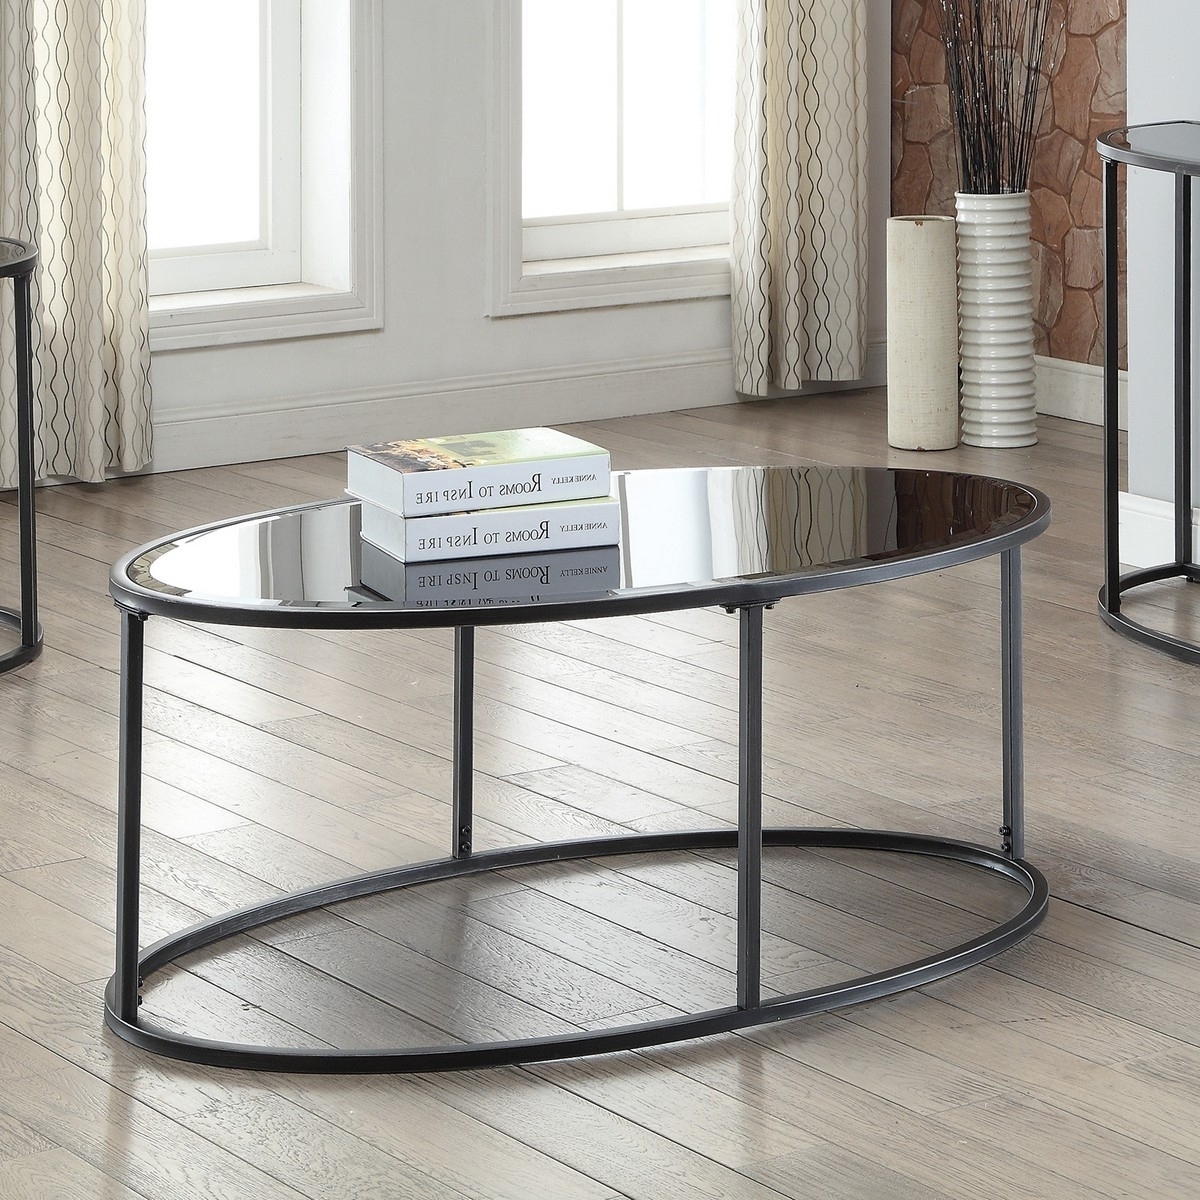 Coaster 704398 Coffee/cocktail Table – Gunmetal Frame 704398 At Pertaining To Widely Used Gunmetal Coffee Tables (View 4 of 20)